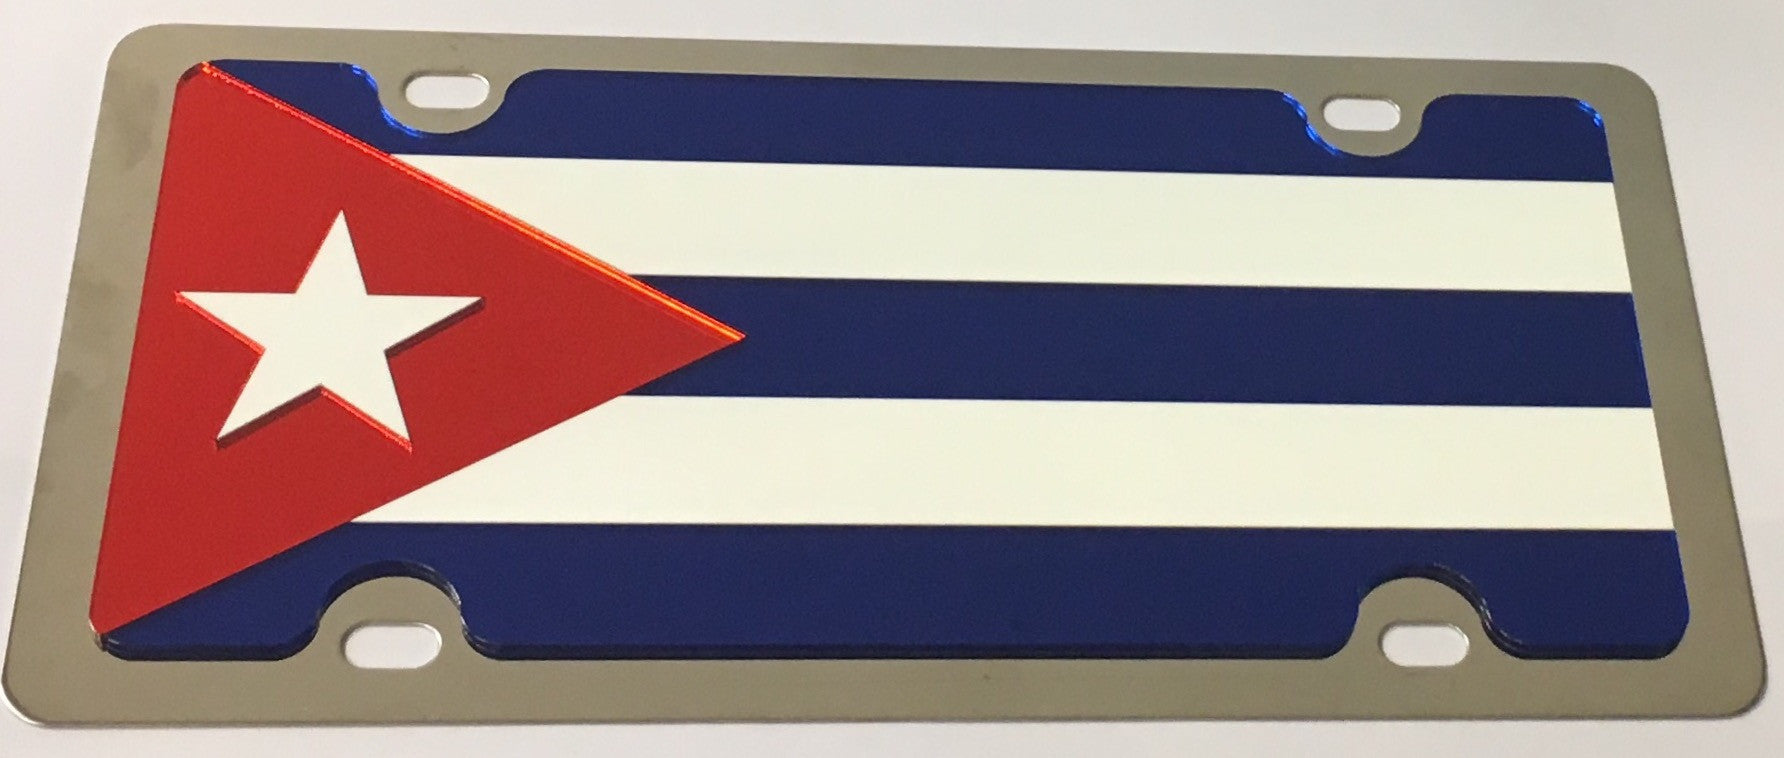 Cuba Flag Stainless Steel License Plate